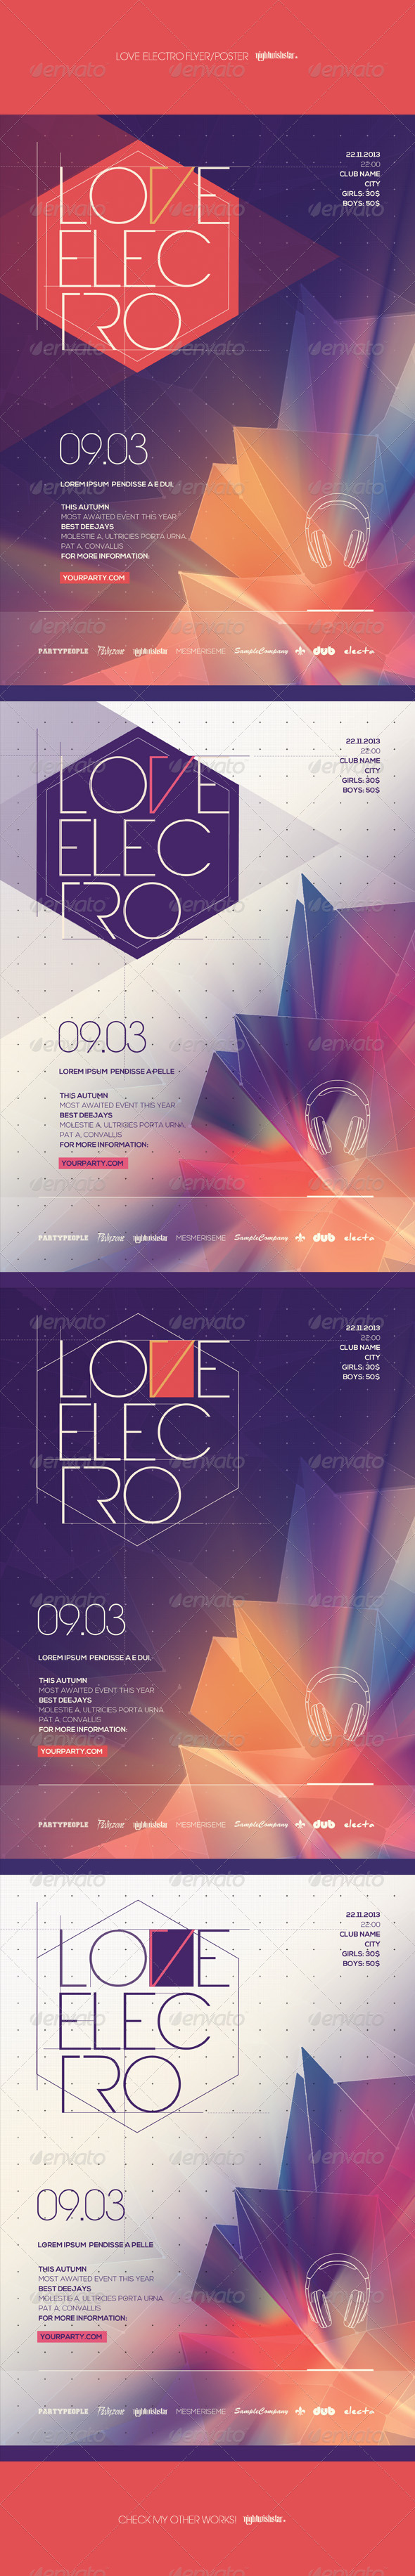 GraphicRiver Love Electro Poster Flyer 7024227